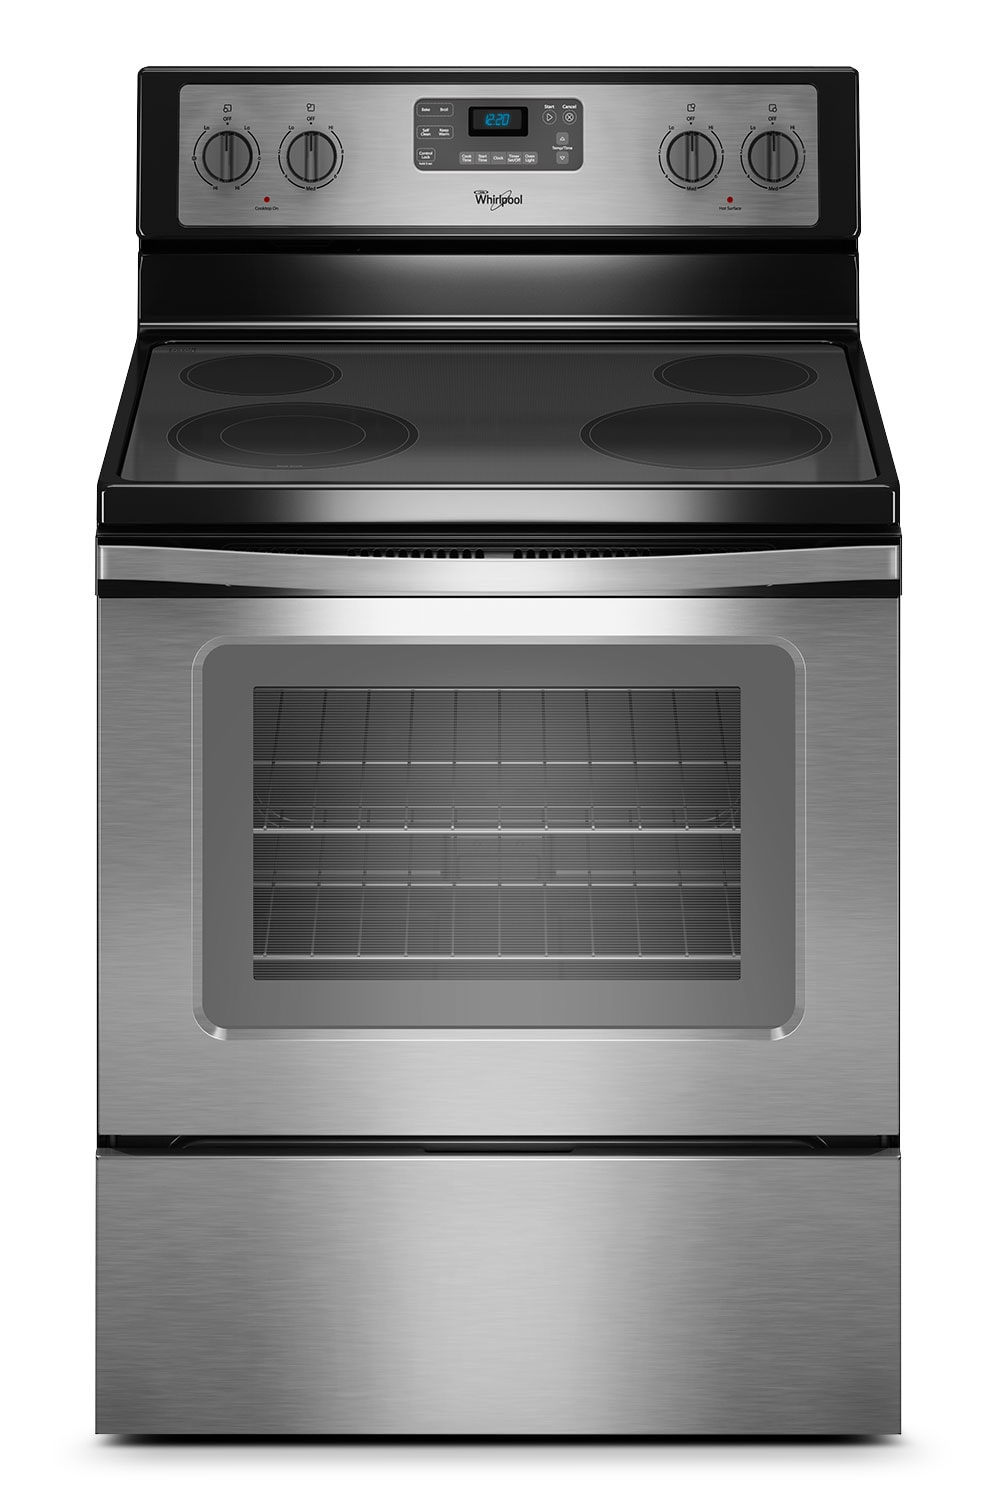 Cooking Products - Whirlpool 5.3 Cu. Ft. Electric Range - Stainless Steel